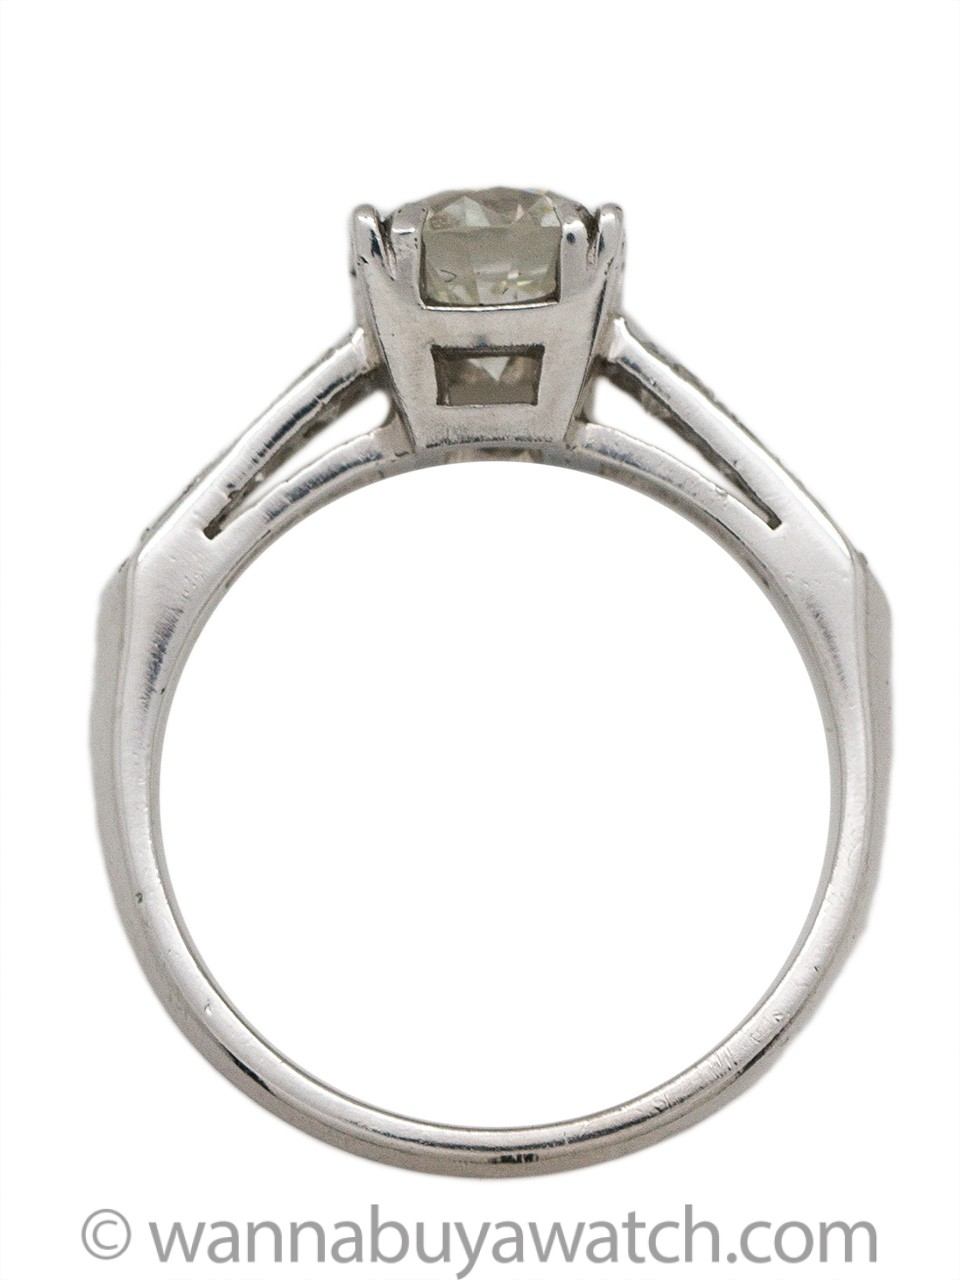 Vintage Engagement Ring Platinum 1.27 Carat Transitional Cut H-VS1, circa 1940s